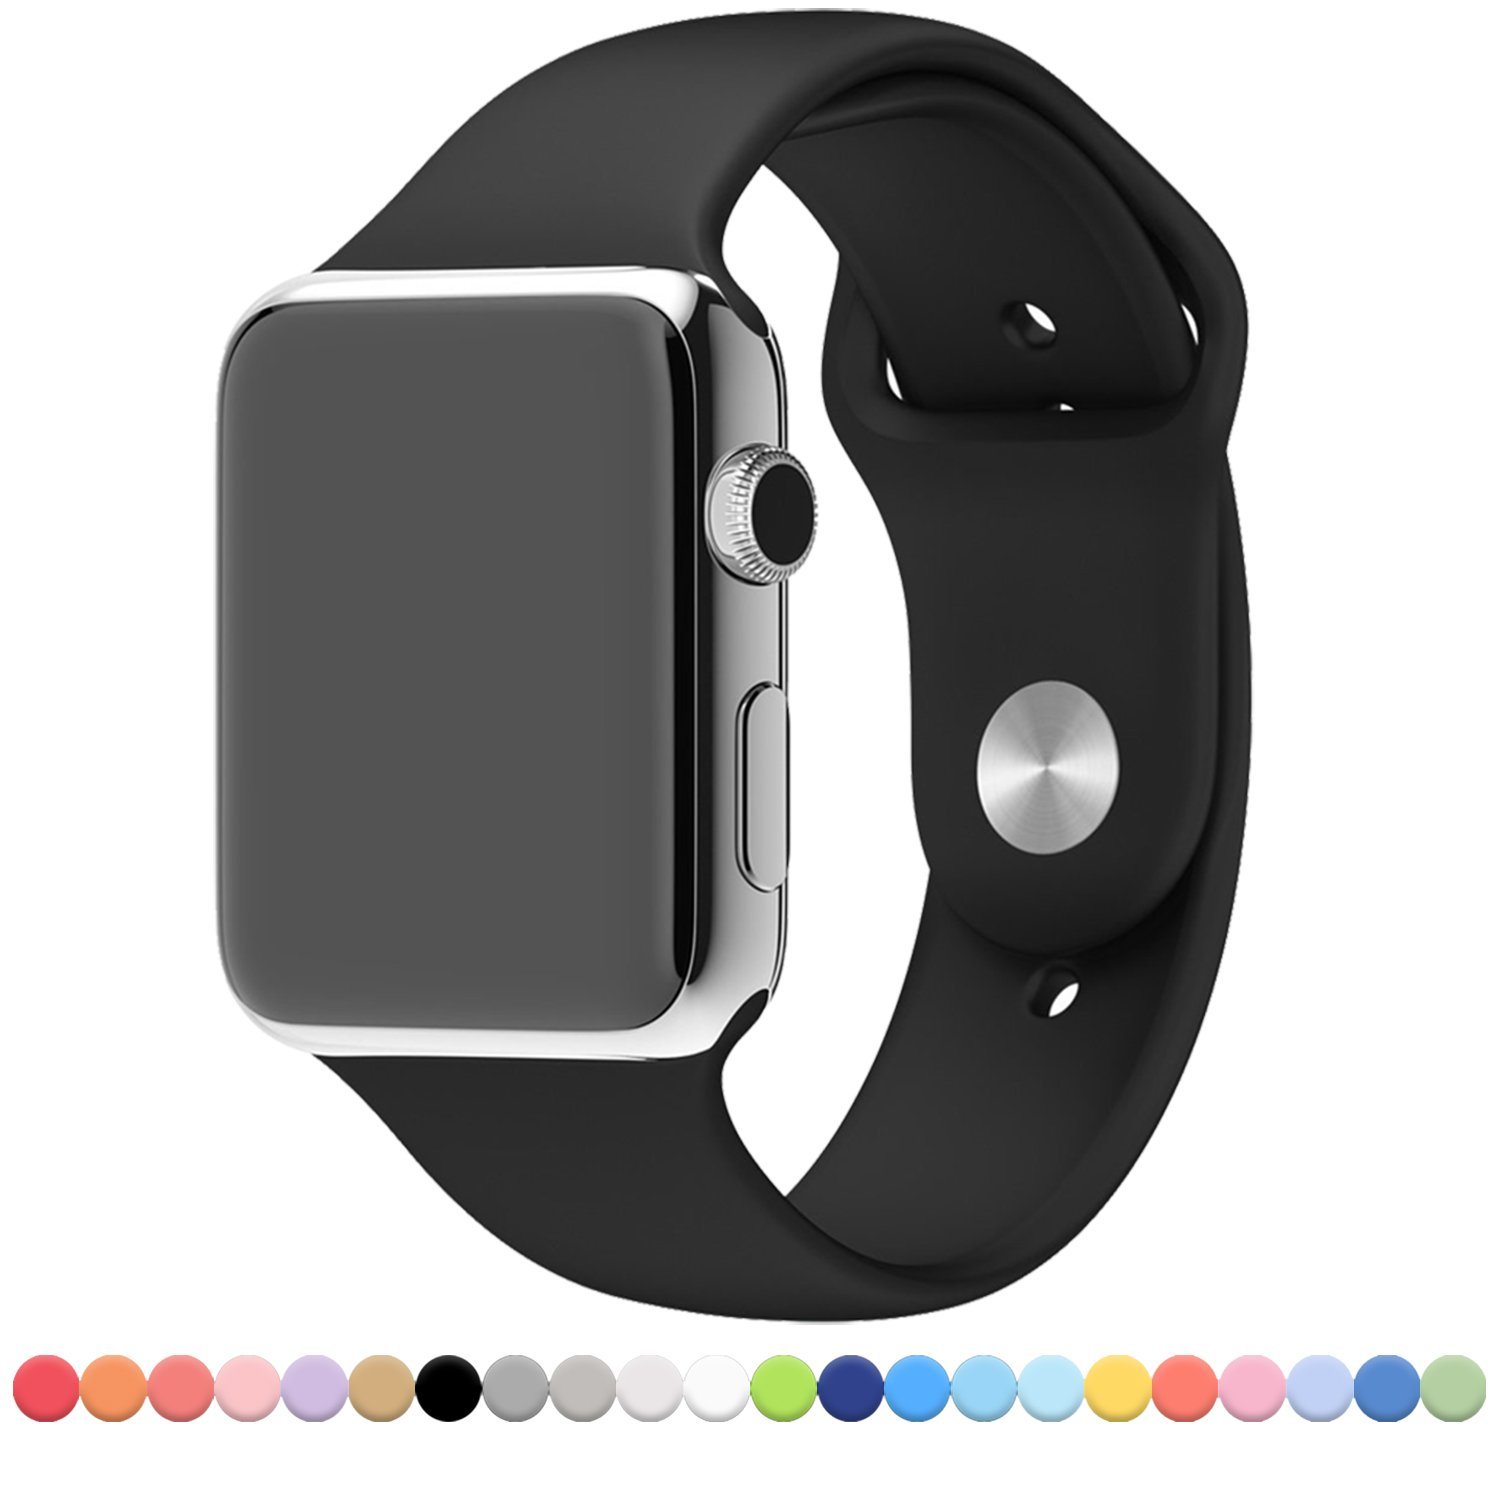 Black colour sport band for apple watch